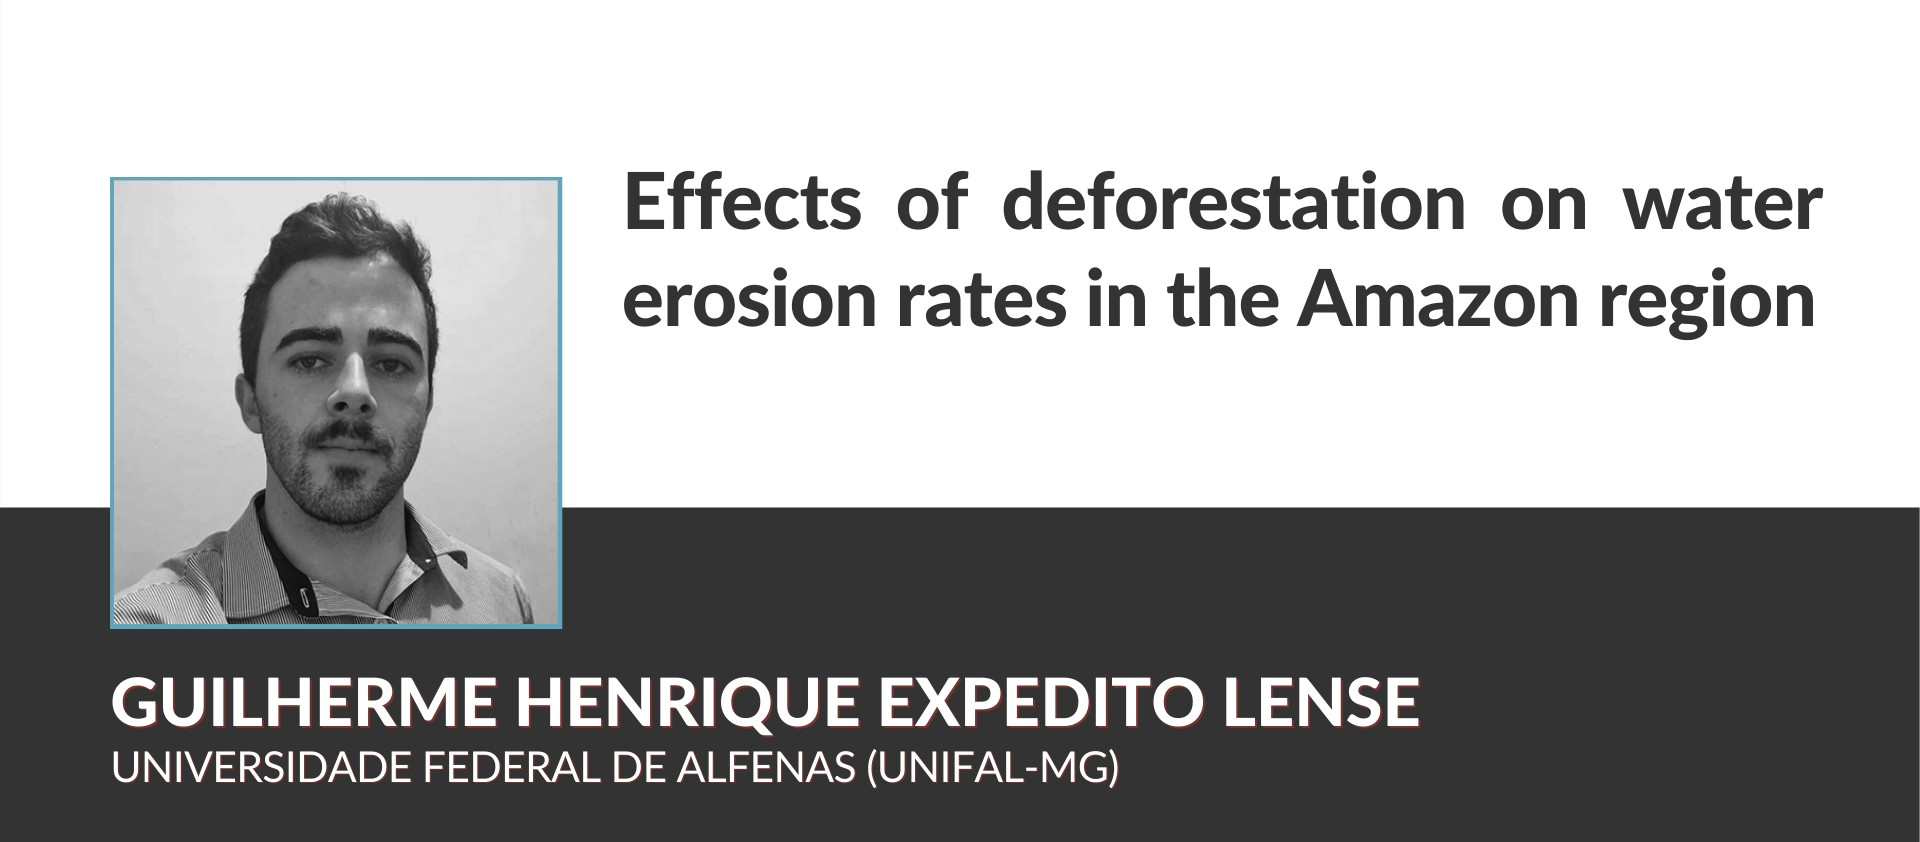 Guilherme Henrique Expedito Lense (UNIFAL) - Título do trabalho: Effects of deforestation on water erosion rates in the Amazon region